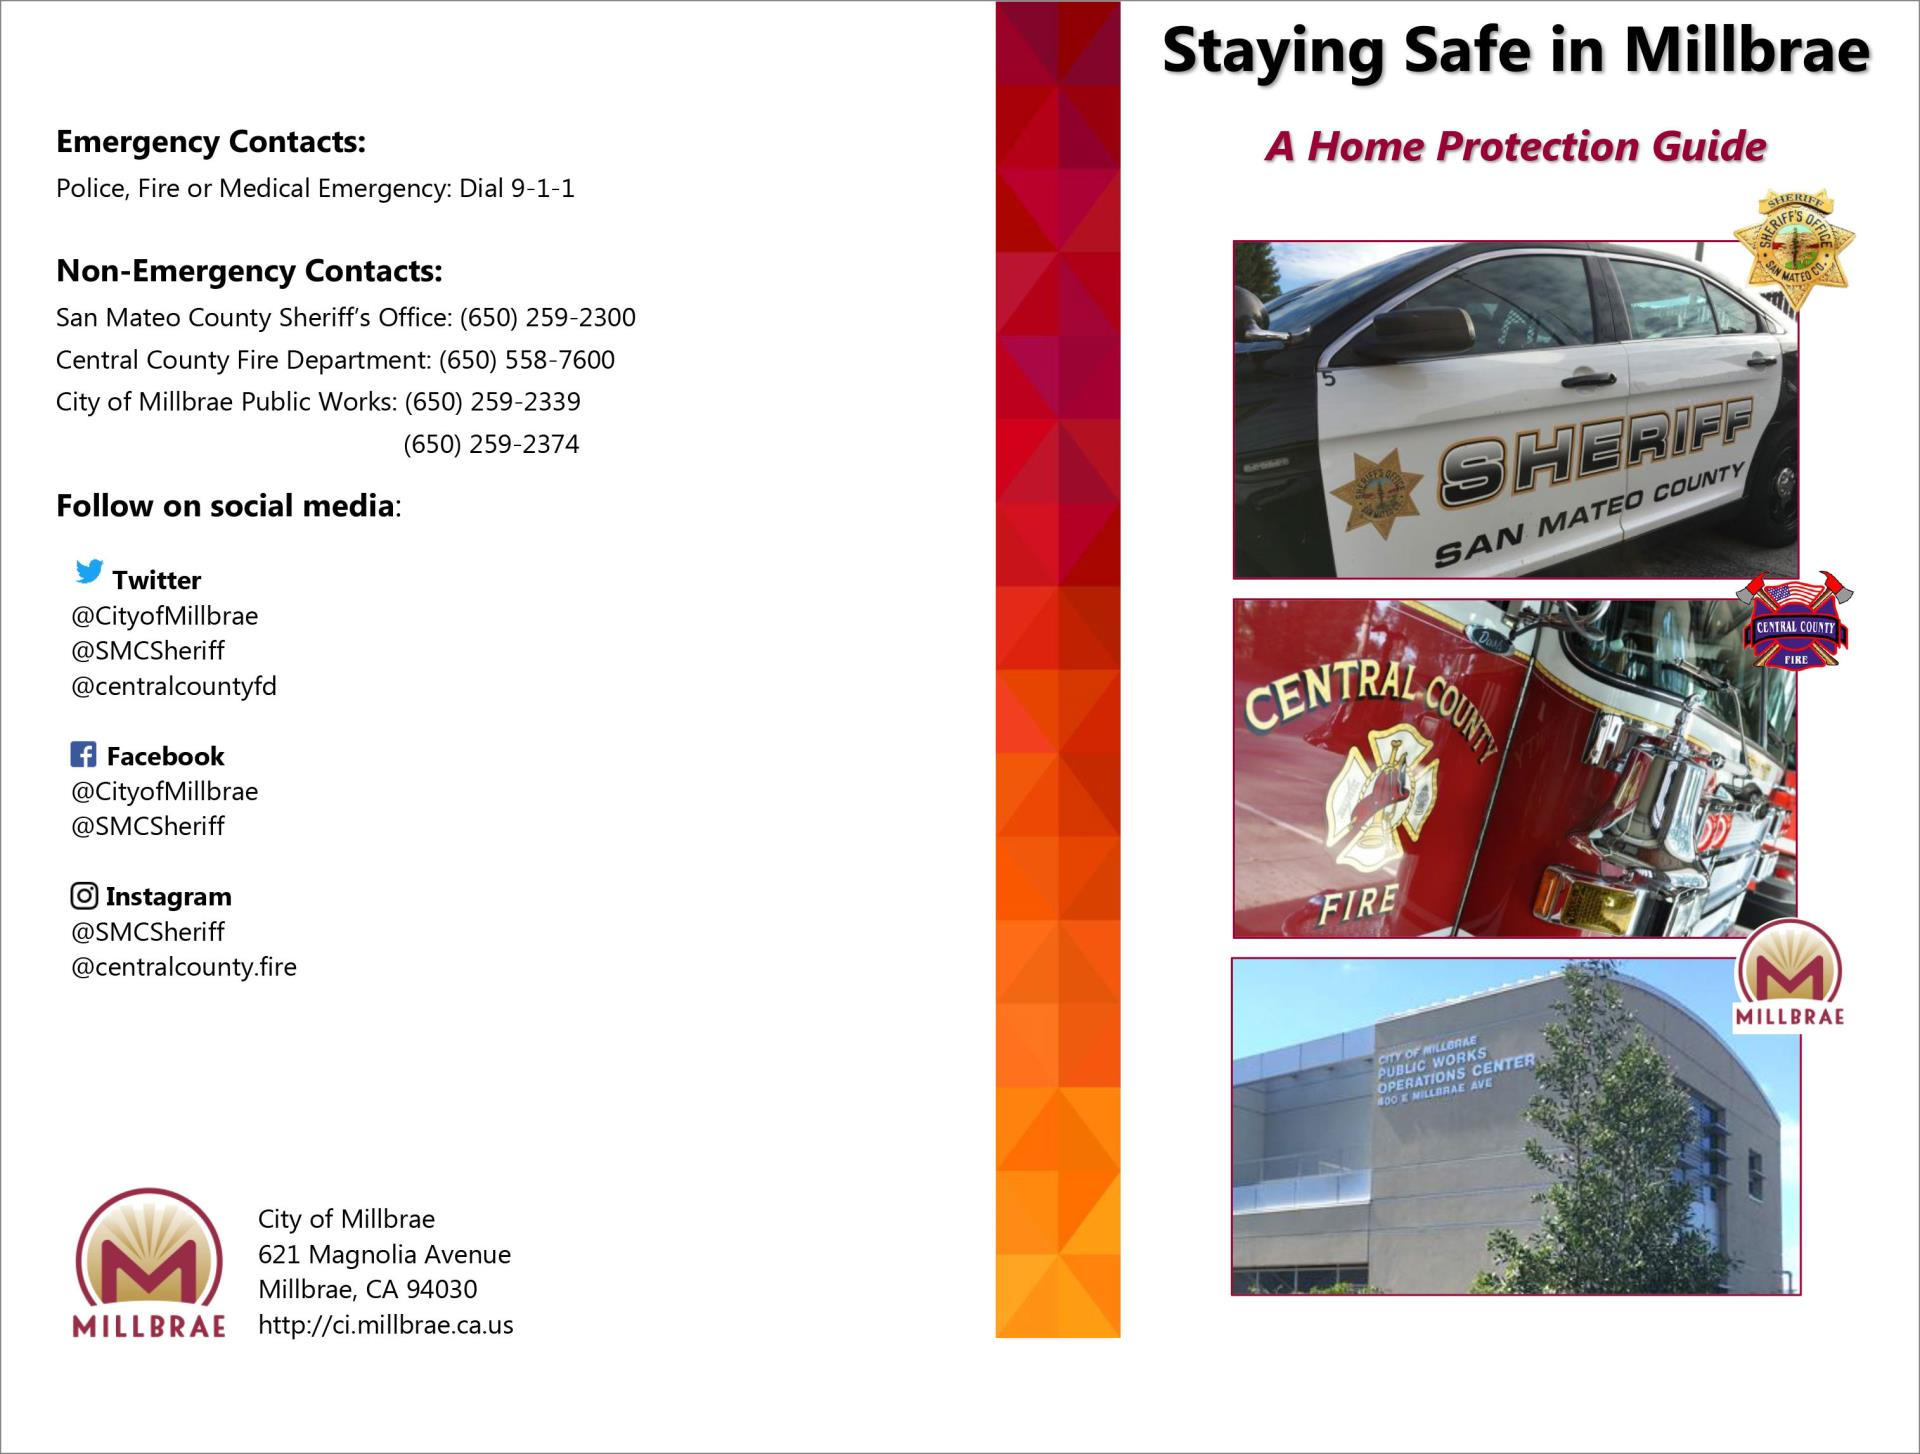 Staying-Safe-in-Millbrae---Home-Protection-Guide-Cover-Page